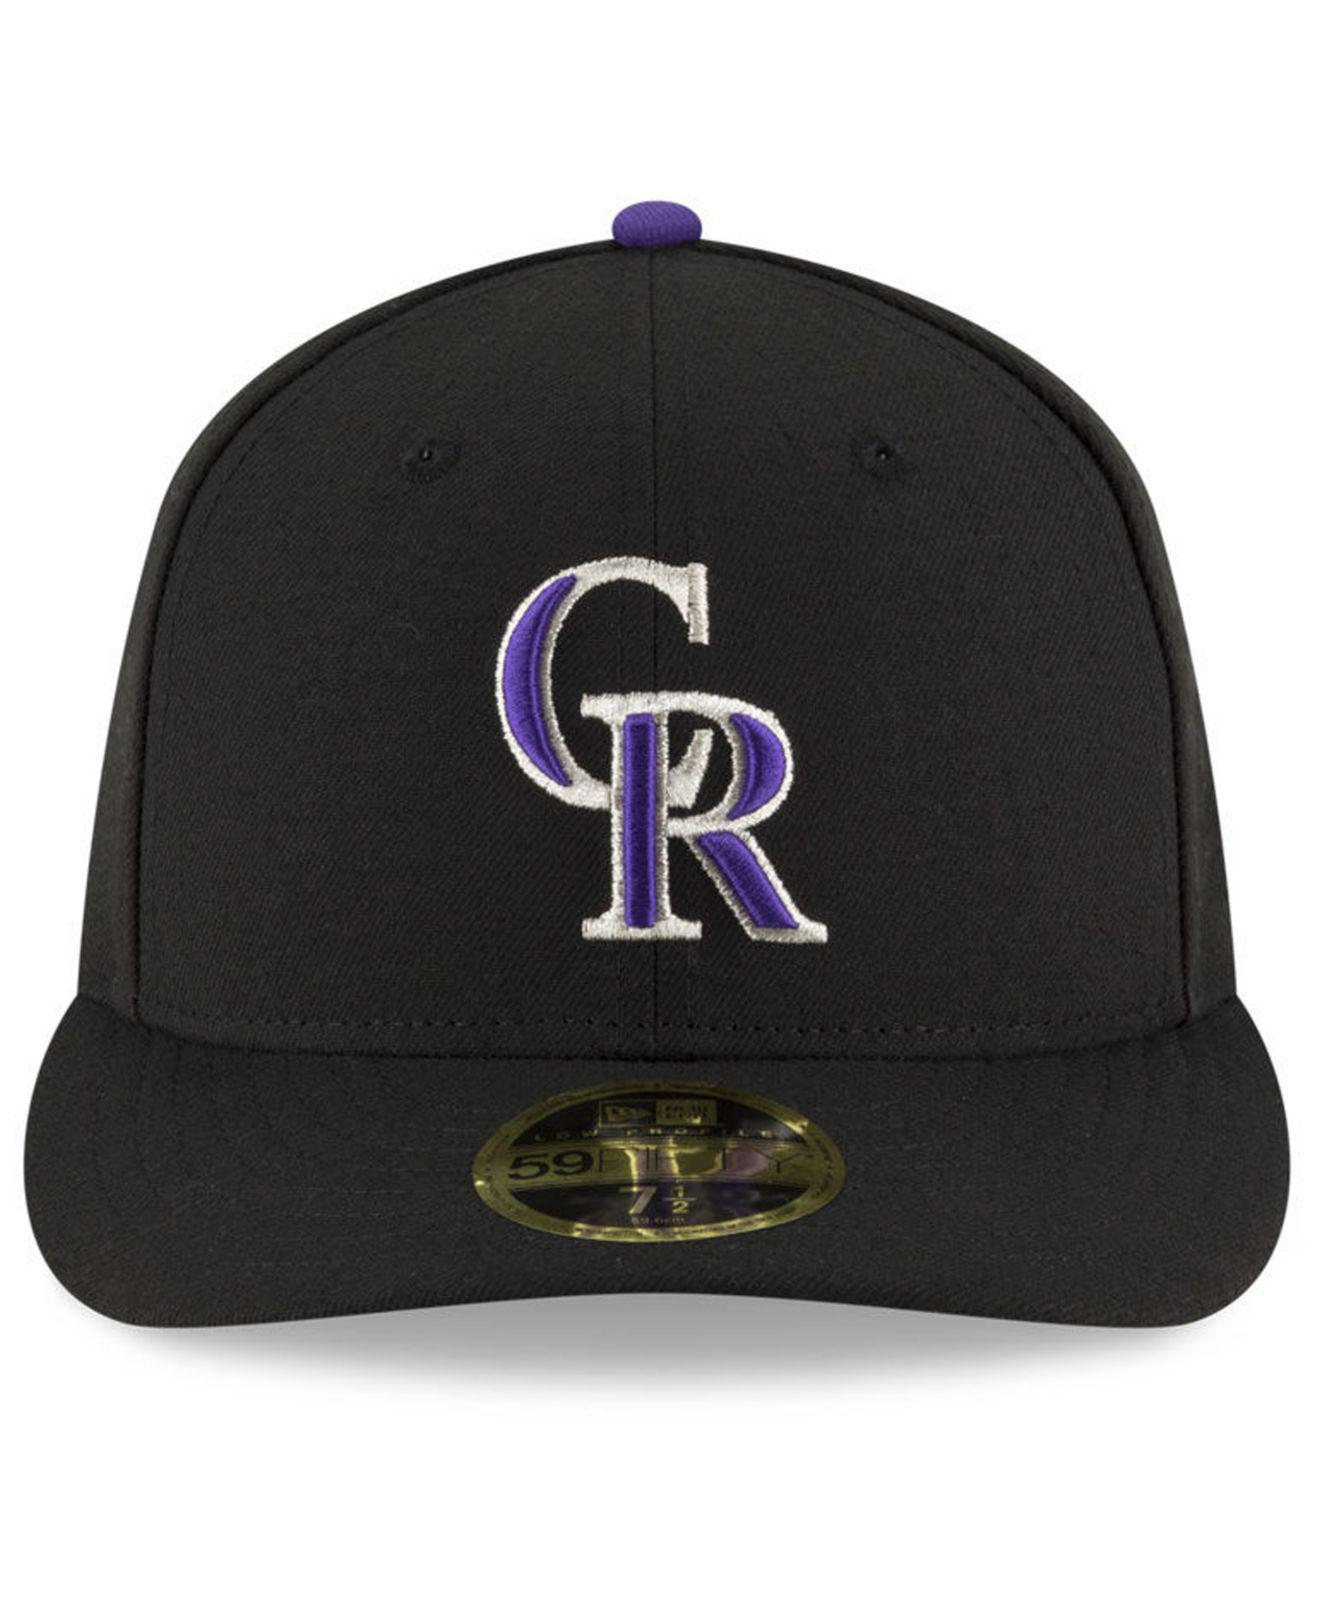 435ee8e9981fa Lyst - KTZ Colorado Rockies 9-11 Memorial Low Profile 59fifty Fitted Cap in  Black for Men